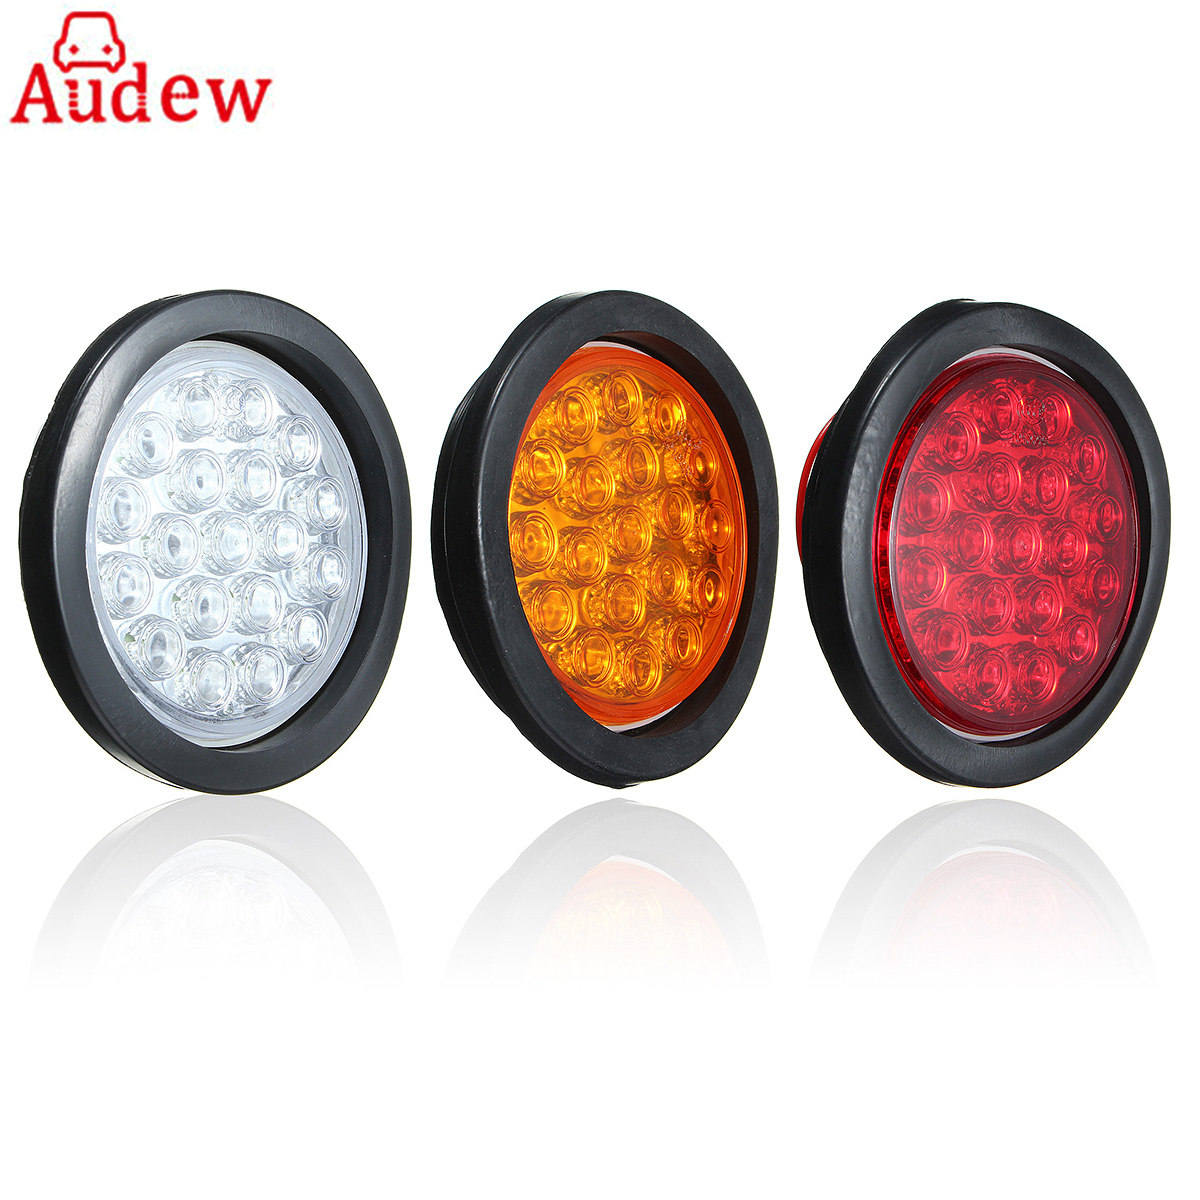 2Pcs 19 SMD Car Tail Lights Side Turn Light ATV LED Reflectors Truck Side Marker Indicator Warning Lights Red Yellow White